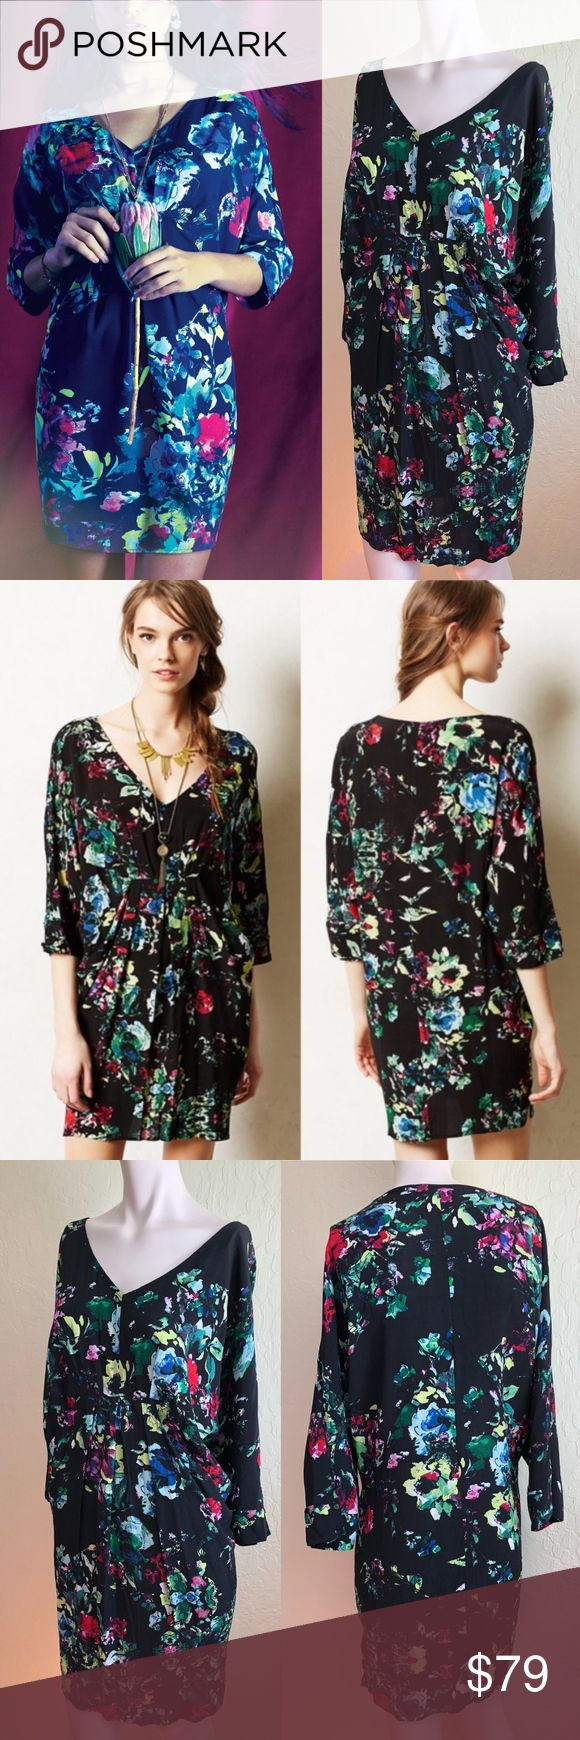 """Anthropologie Maeve Hot Drape Petal Palette Floral MSRP $128 Sold out!  Size L Color Black multi floral  Sleek w/leggings + street-smart w/skinny jeans, tunics (like this silky, boho one from Maeve) are on our radar for spring. Wear also as a sexy pullover draped dress w/chilled pocket styling + dolman sleeves  EUC; hardly worn, no flaws 53% viscose/47% rayon Dry clean  May run large - check measurements! Flat approx"""" Length 36 Chest 27.5 (dolman) Waist 26 (empire) Hip 25 Dolman sleeve 22.5…"""